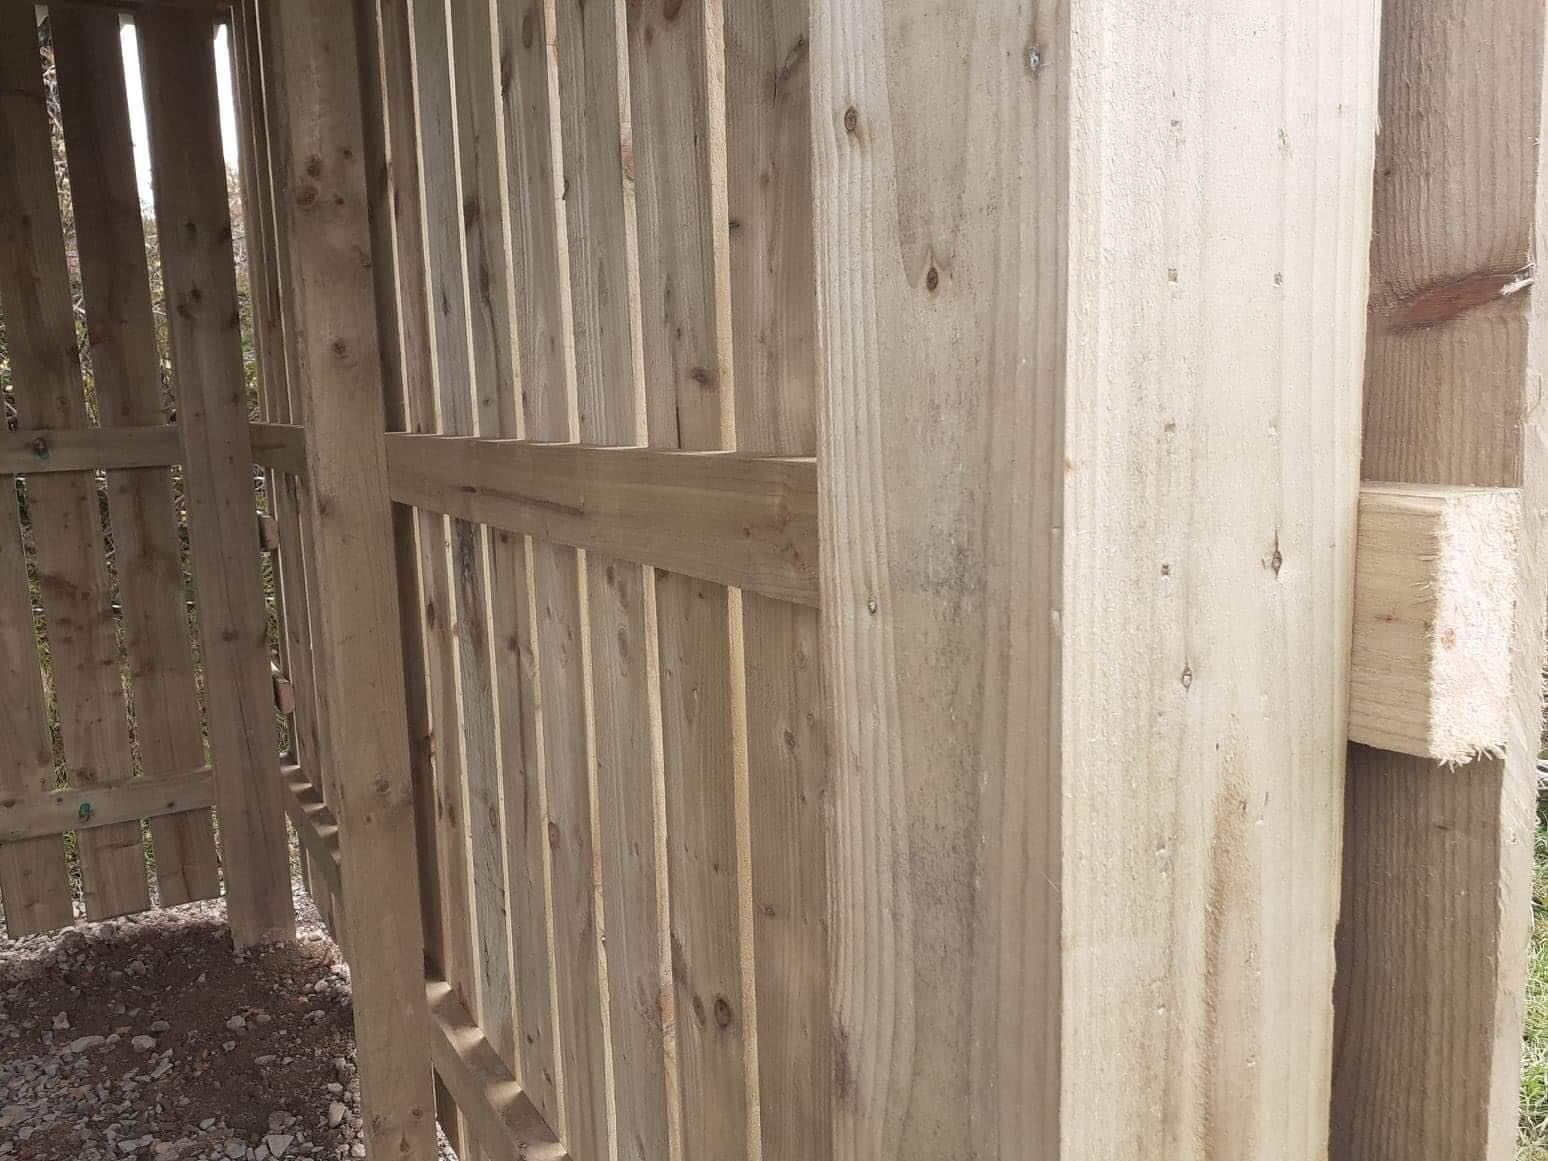 Close look at the wooden panneling